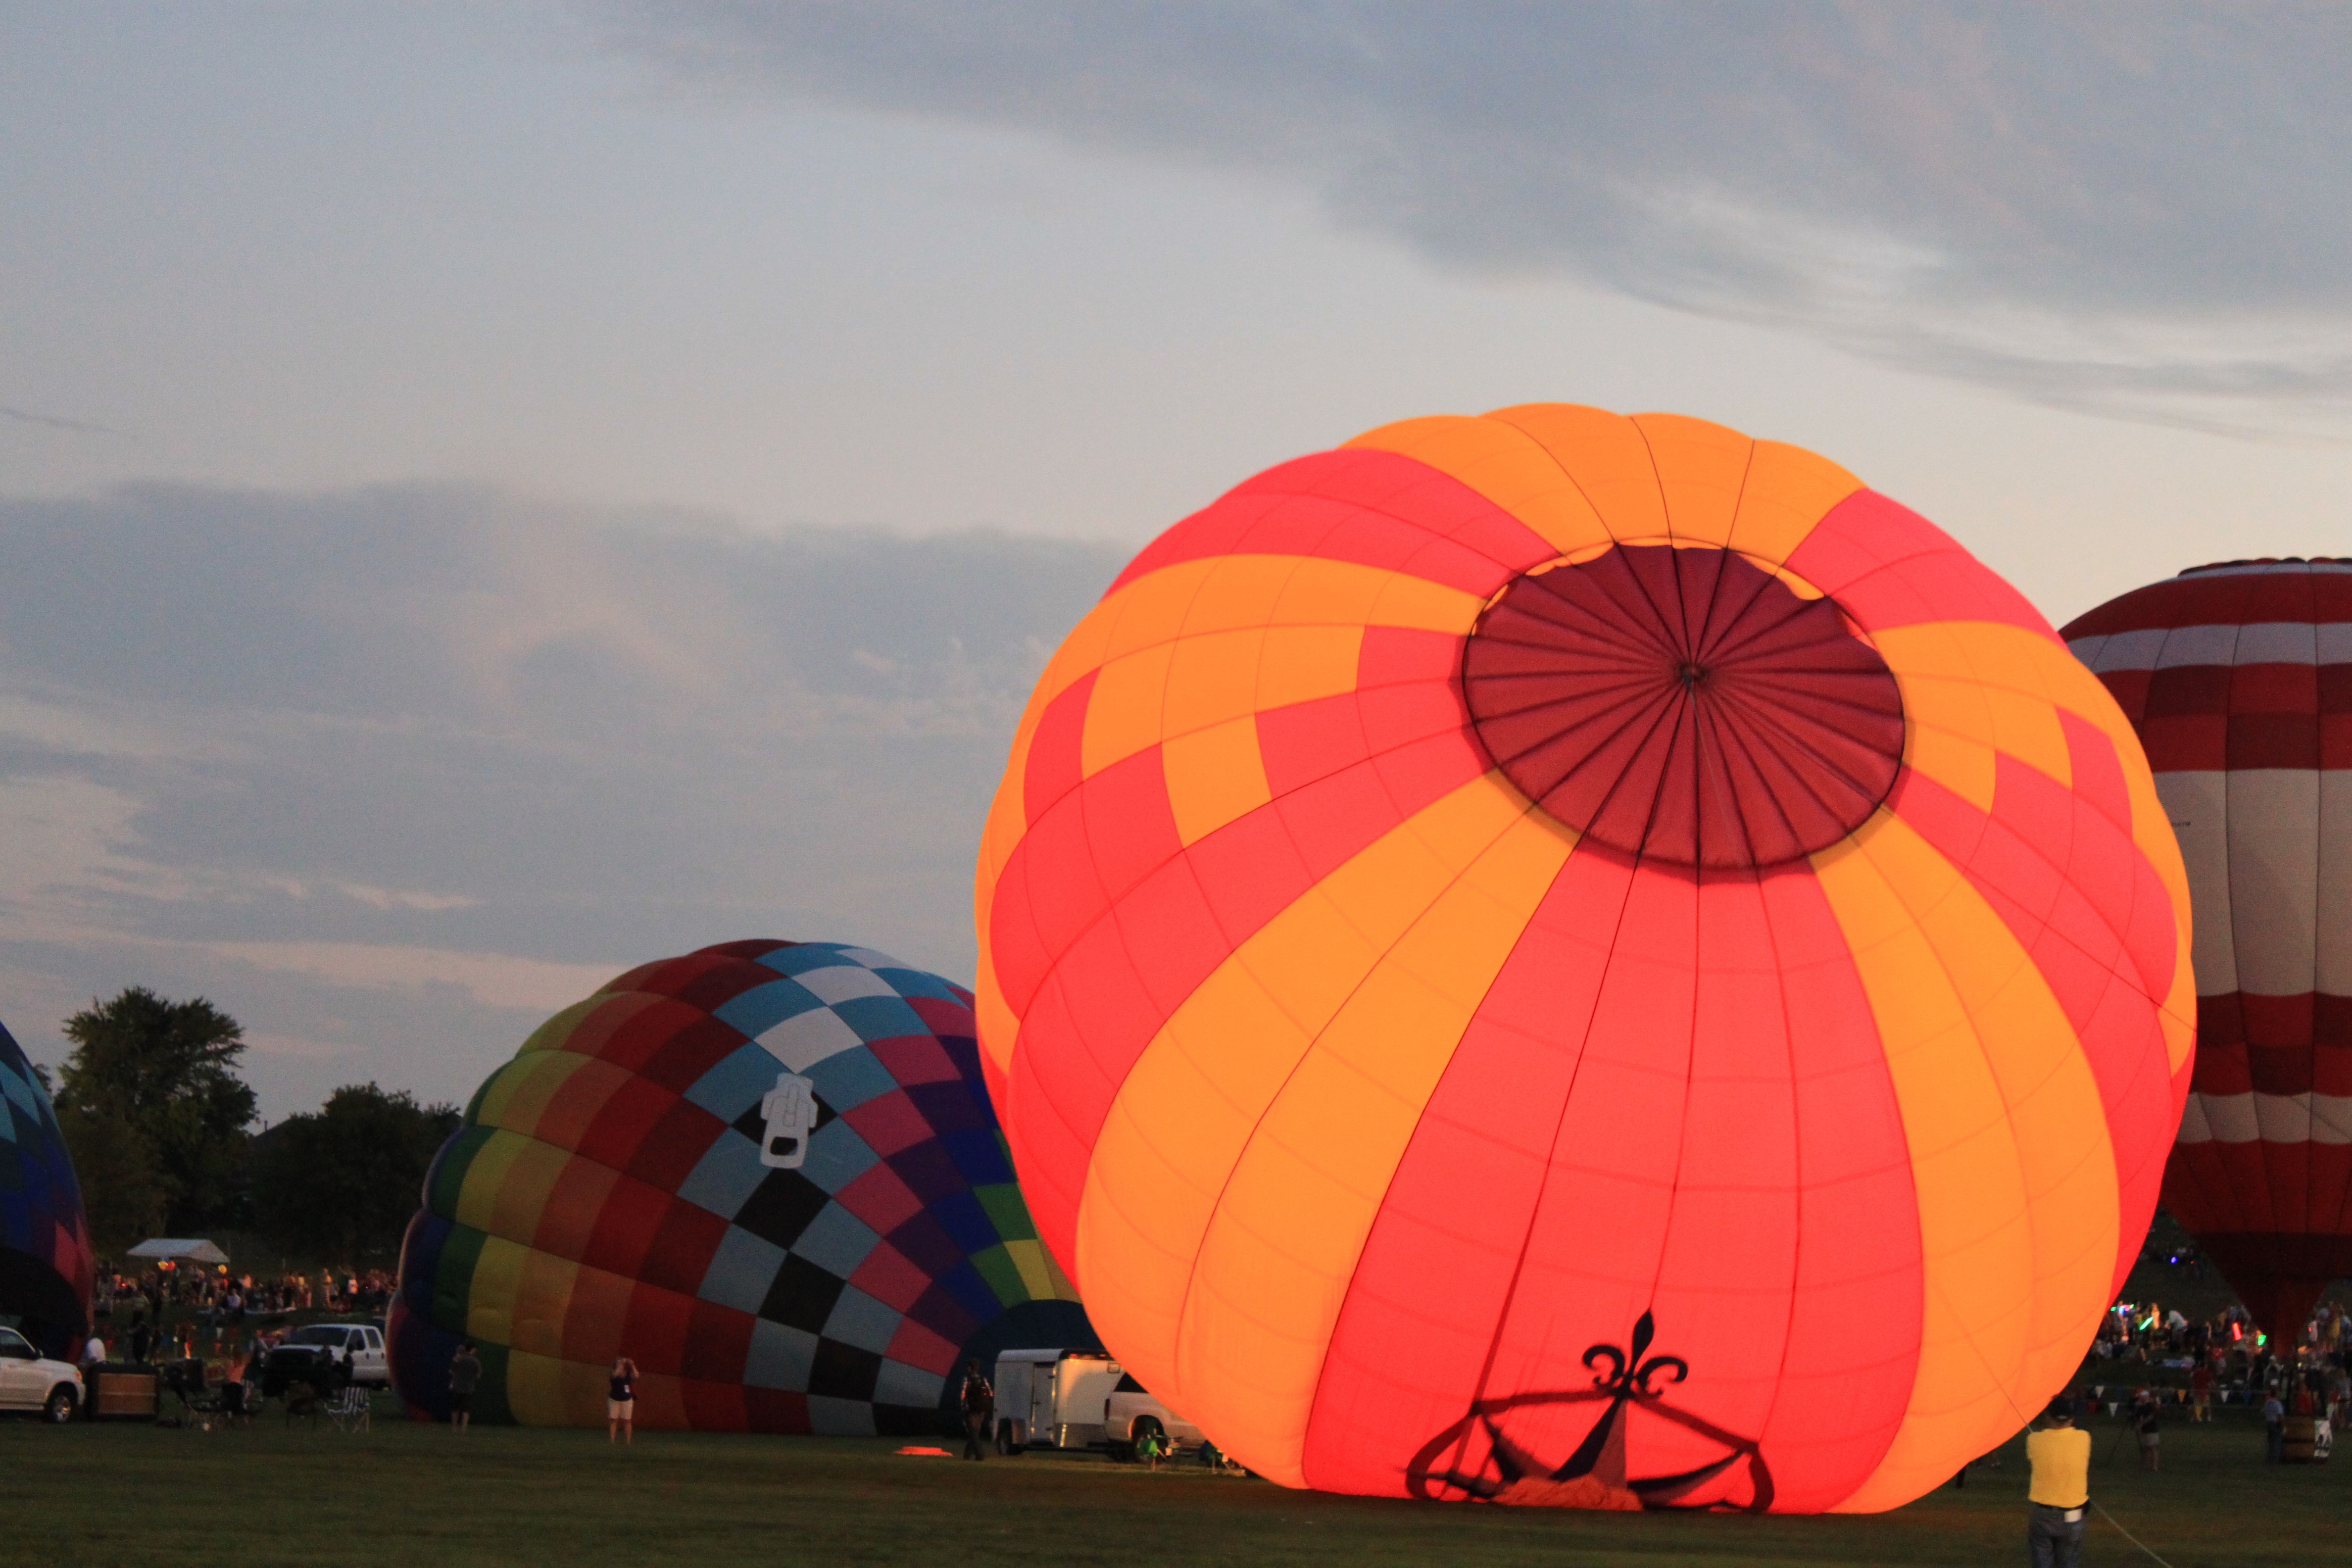 Plano Balloon Festival (With images) My photo album